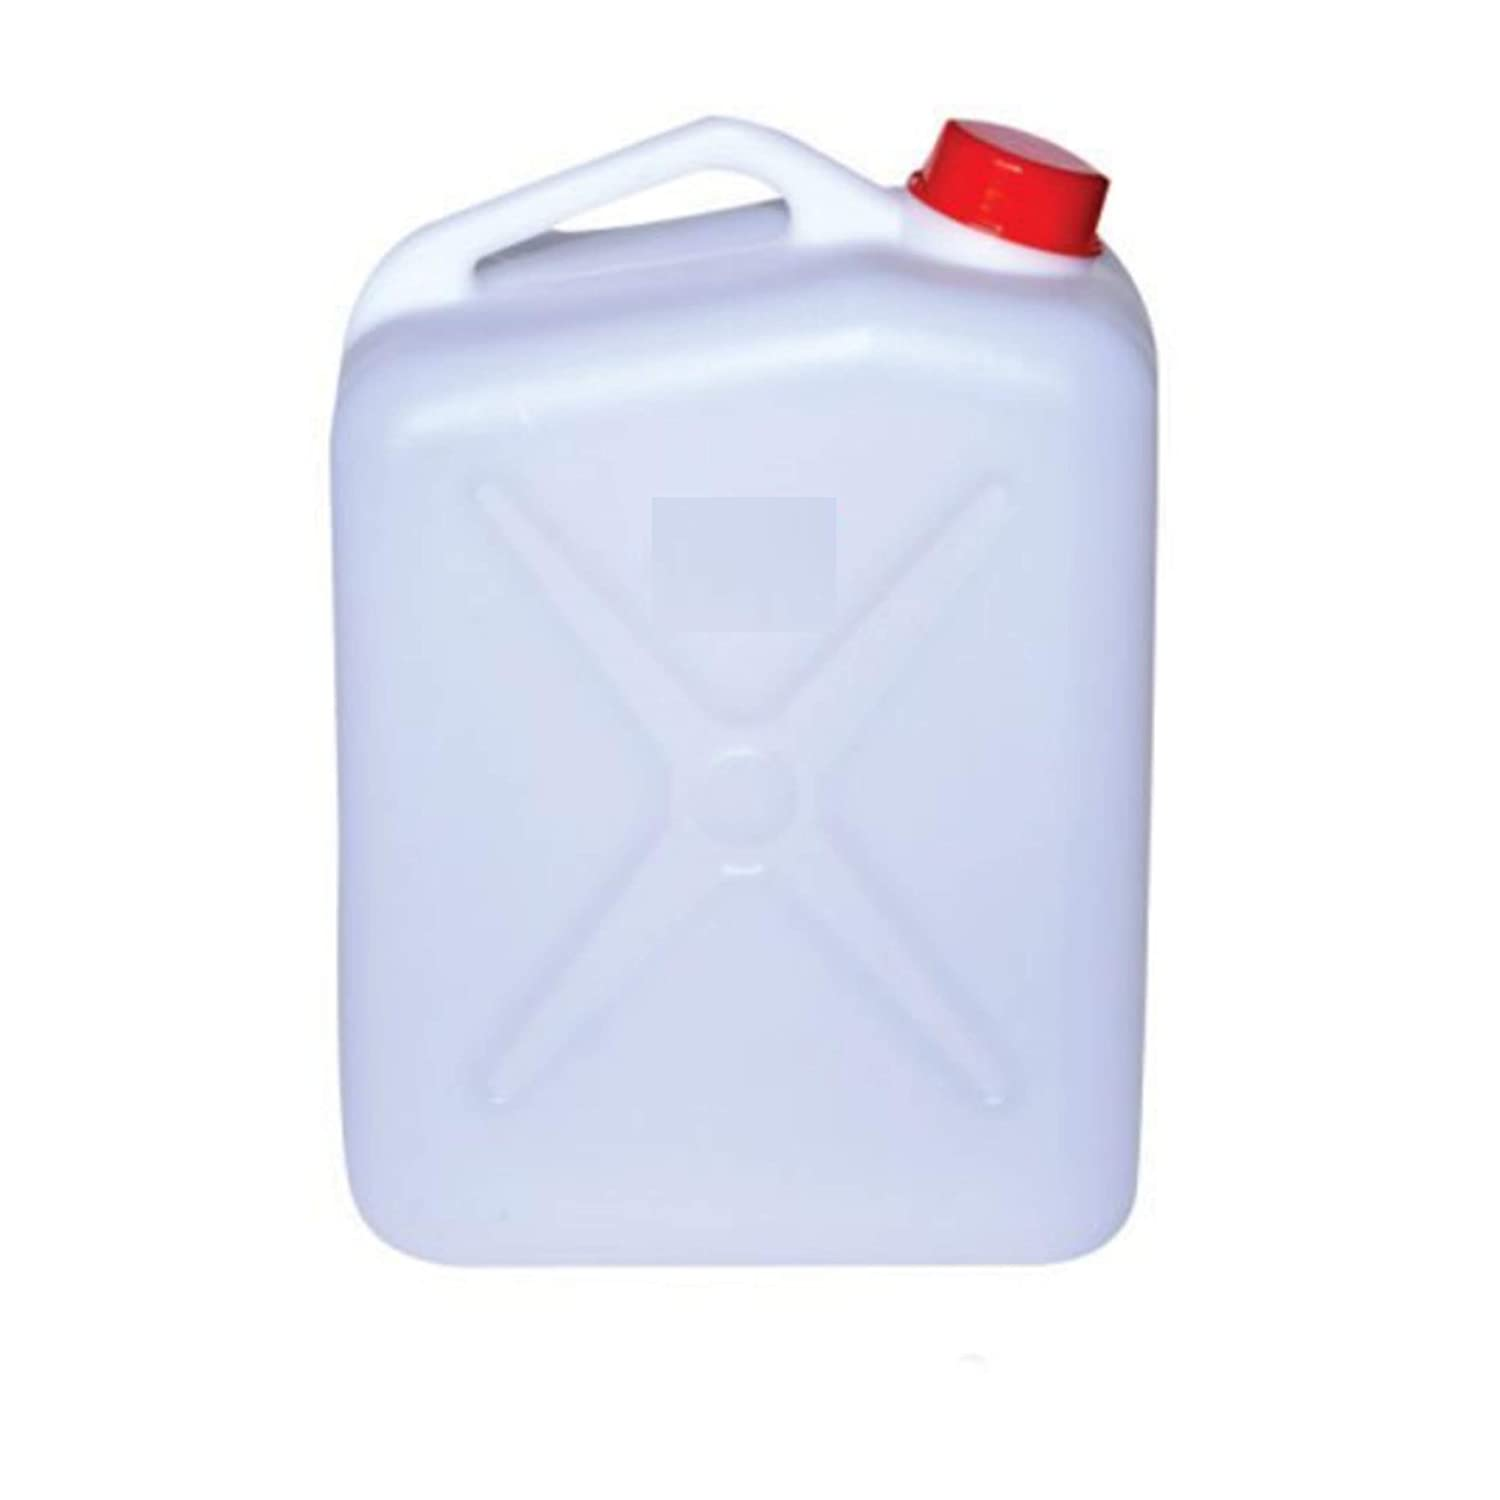 Buy SINGH Plastic Water Cane, 20 L, White Online at Low Prices in India -  Amazon.in